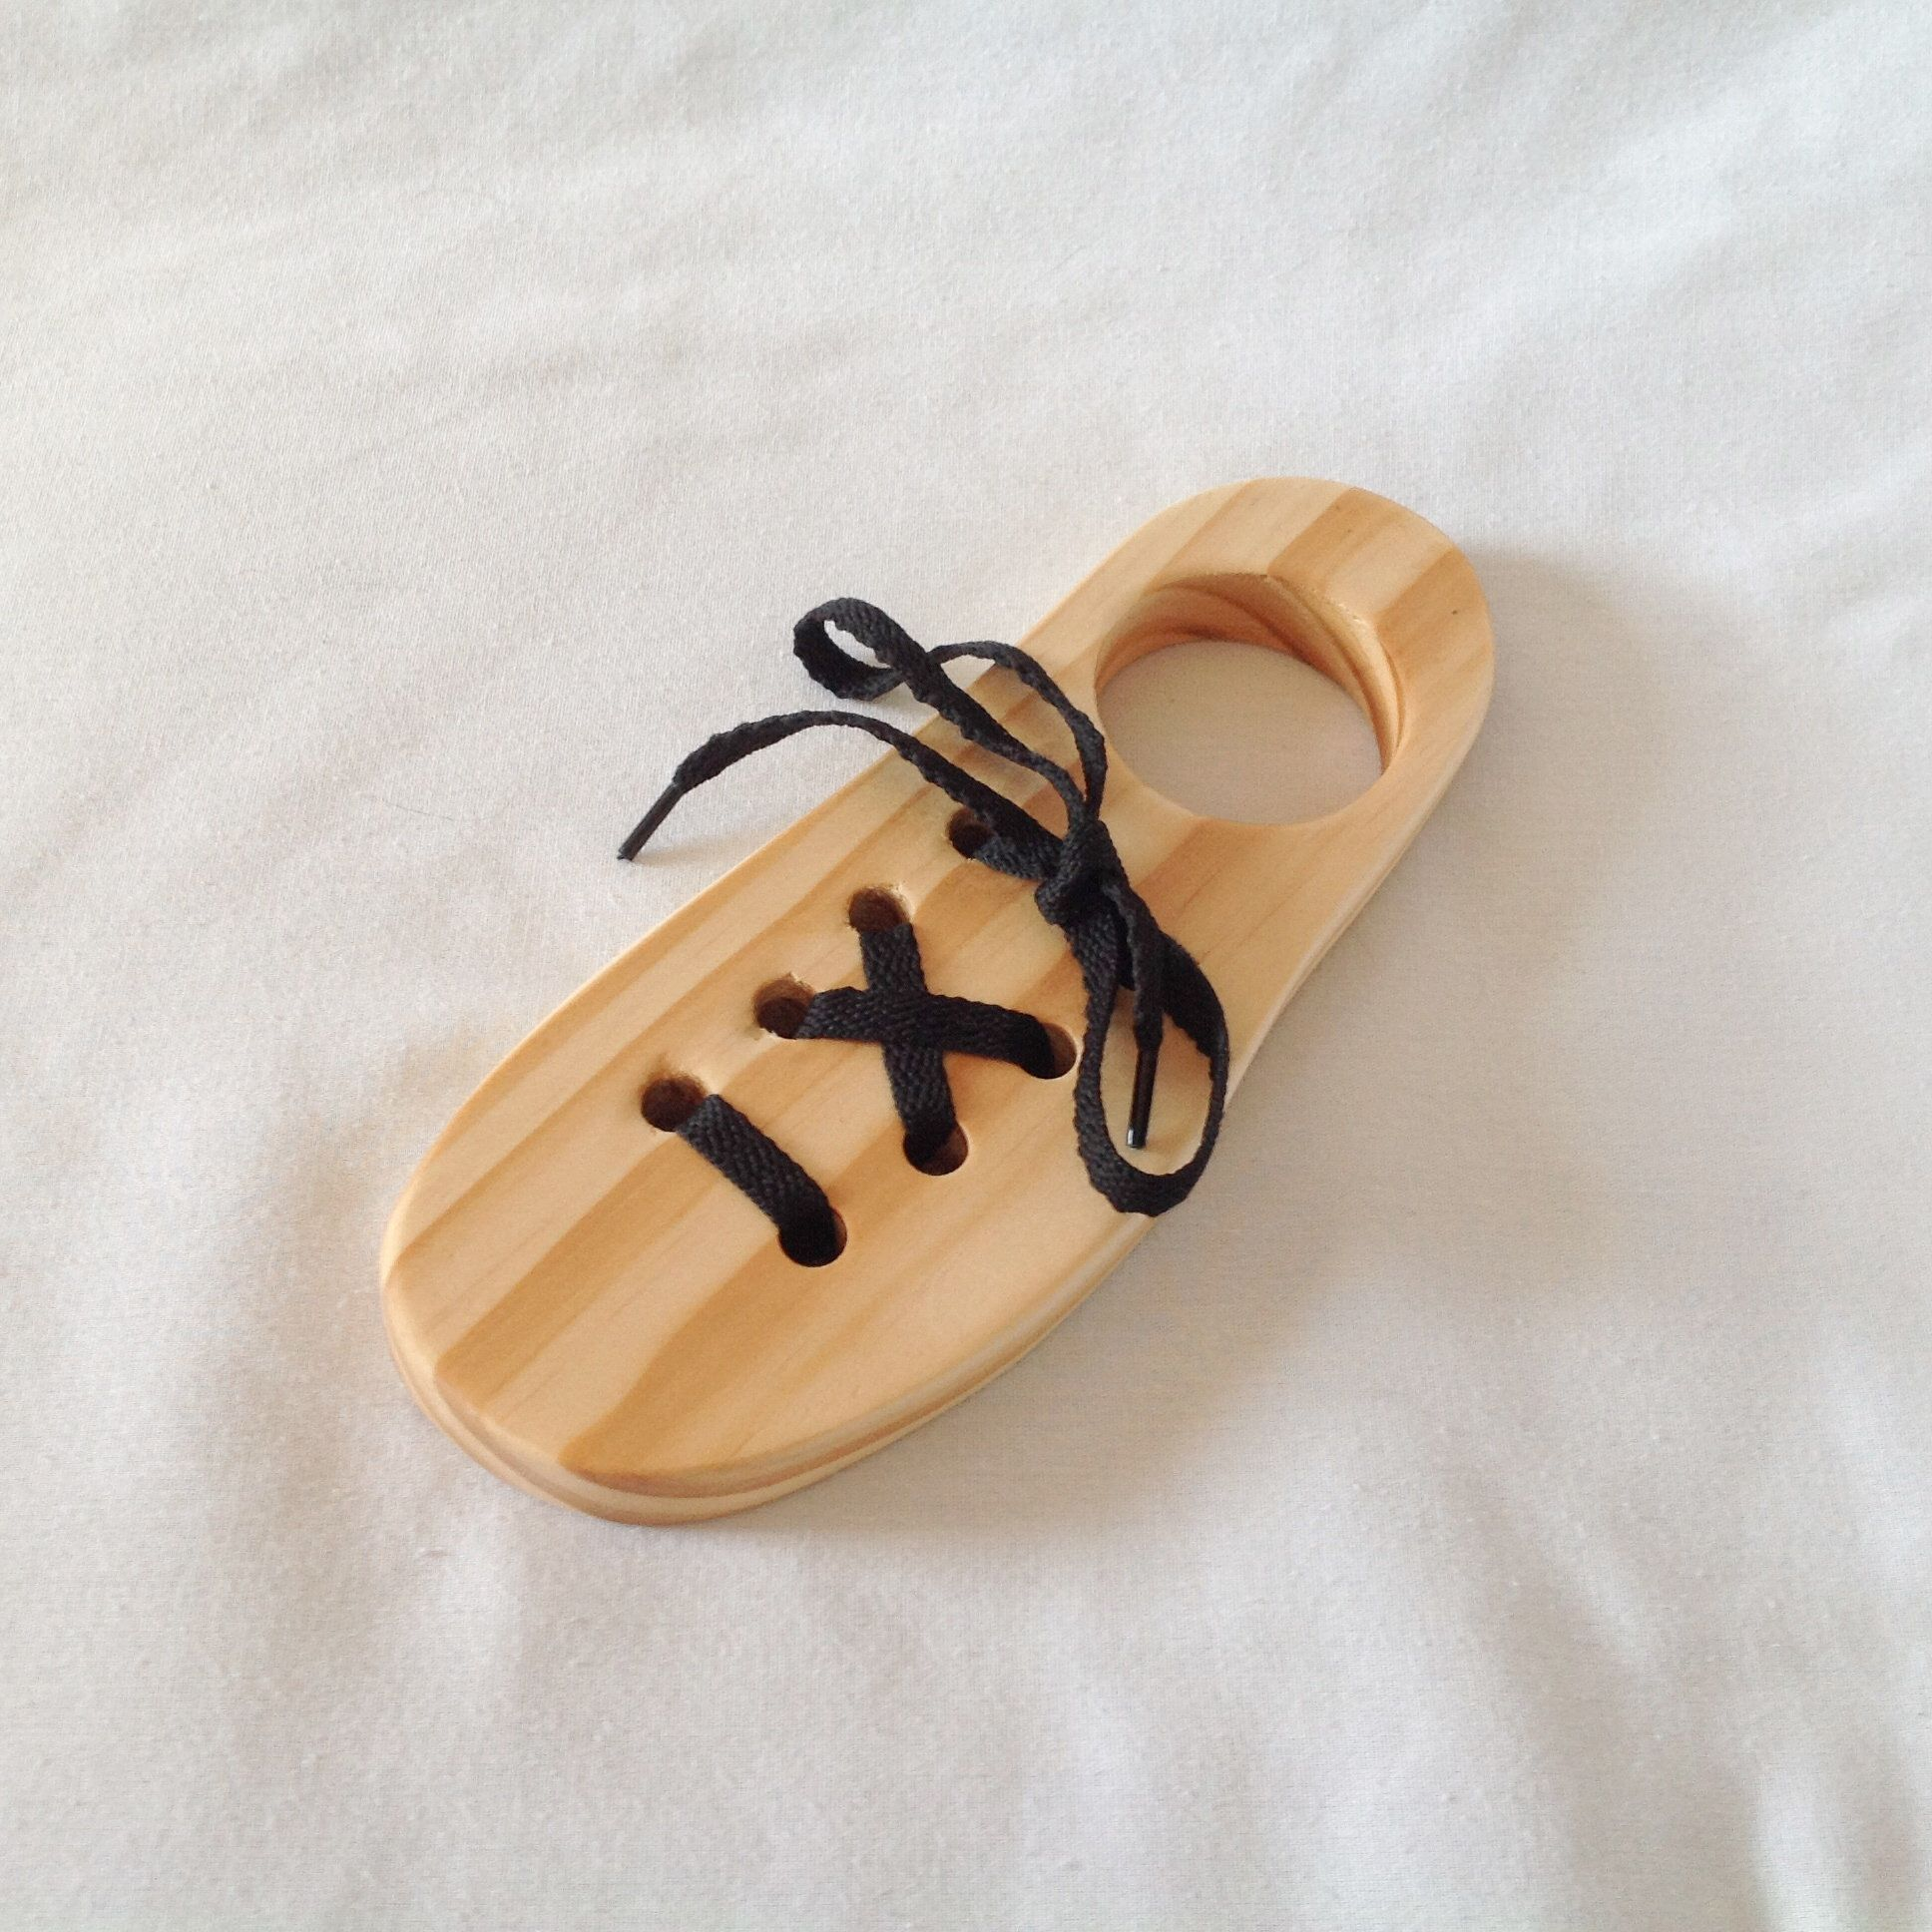 Wooden Shoe Tying Learning Toy A Device For Learning How